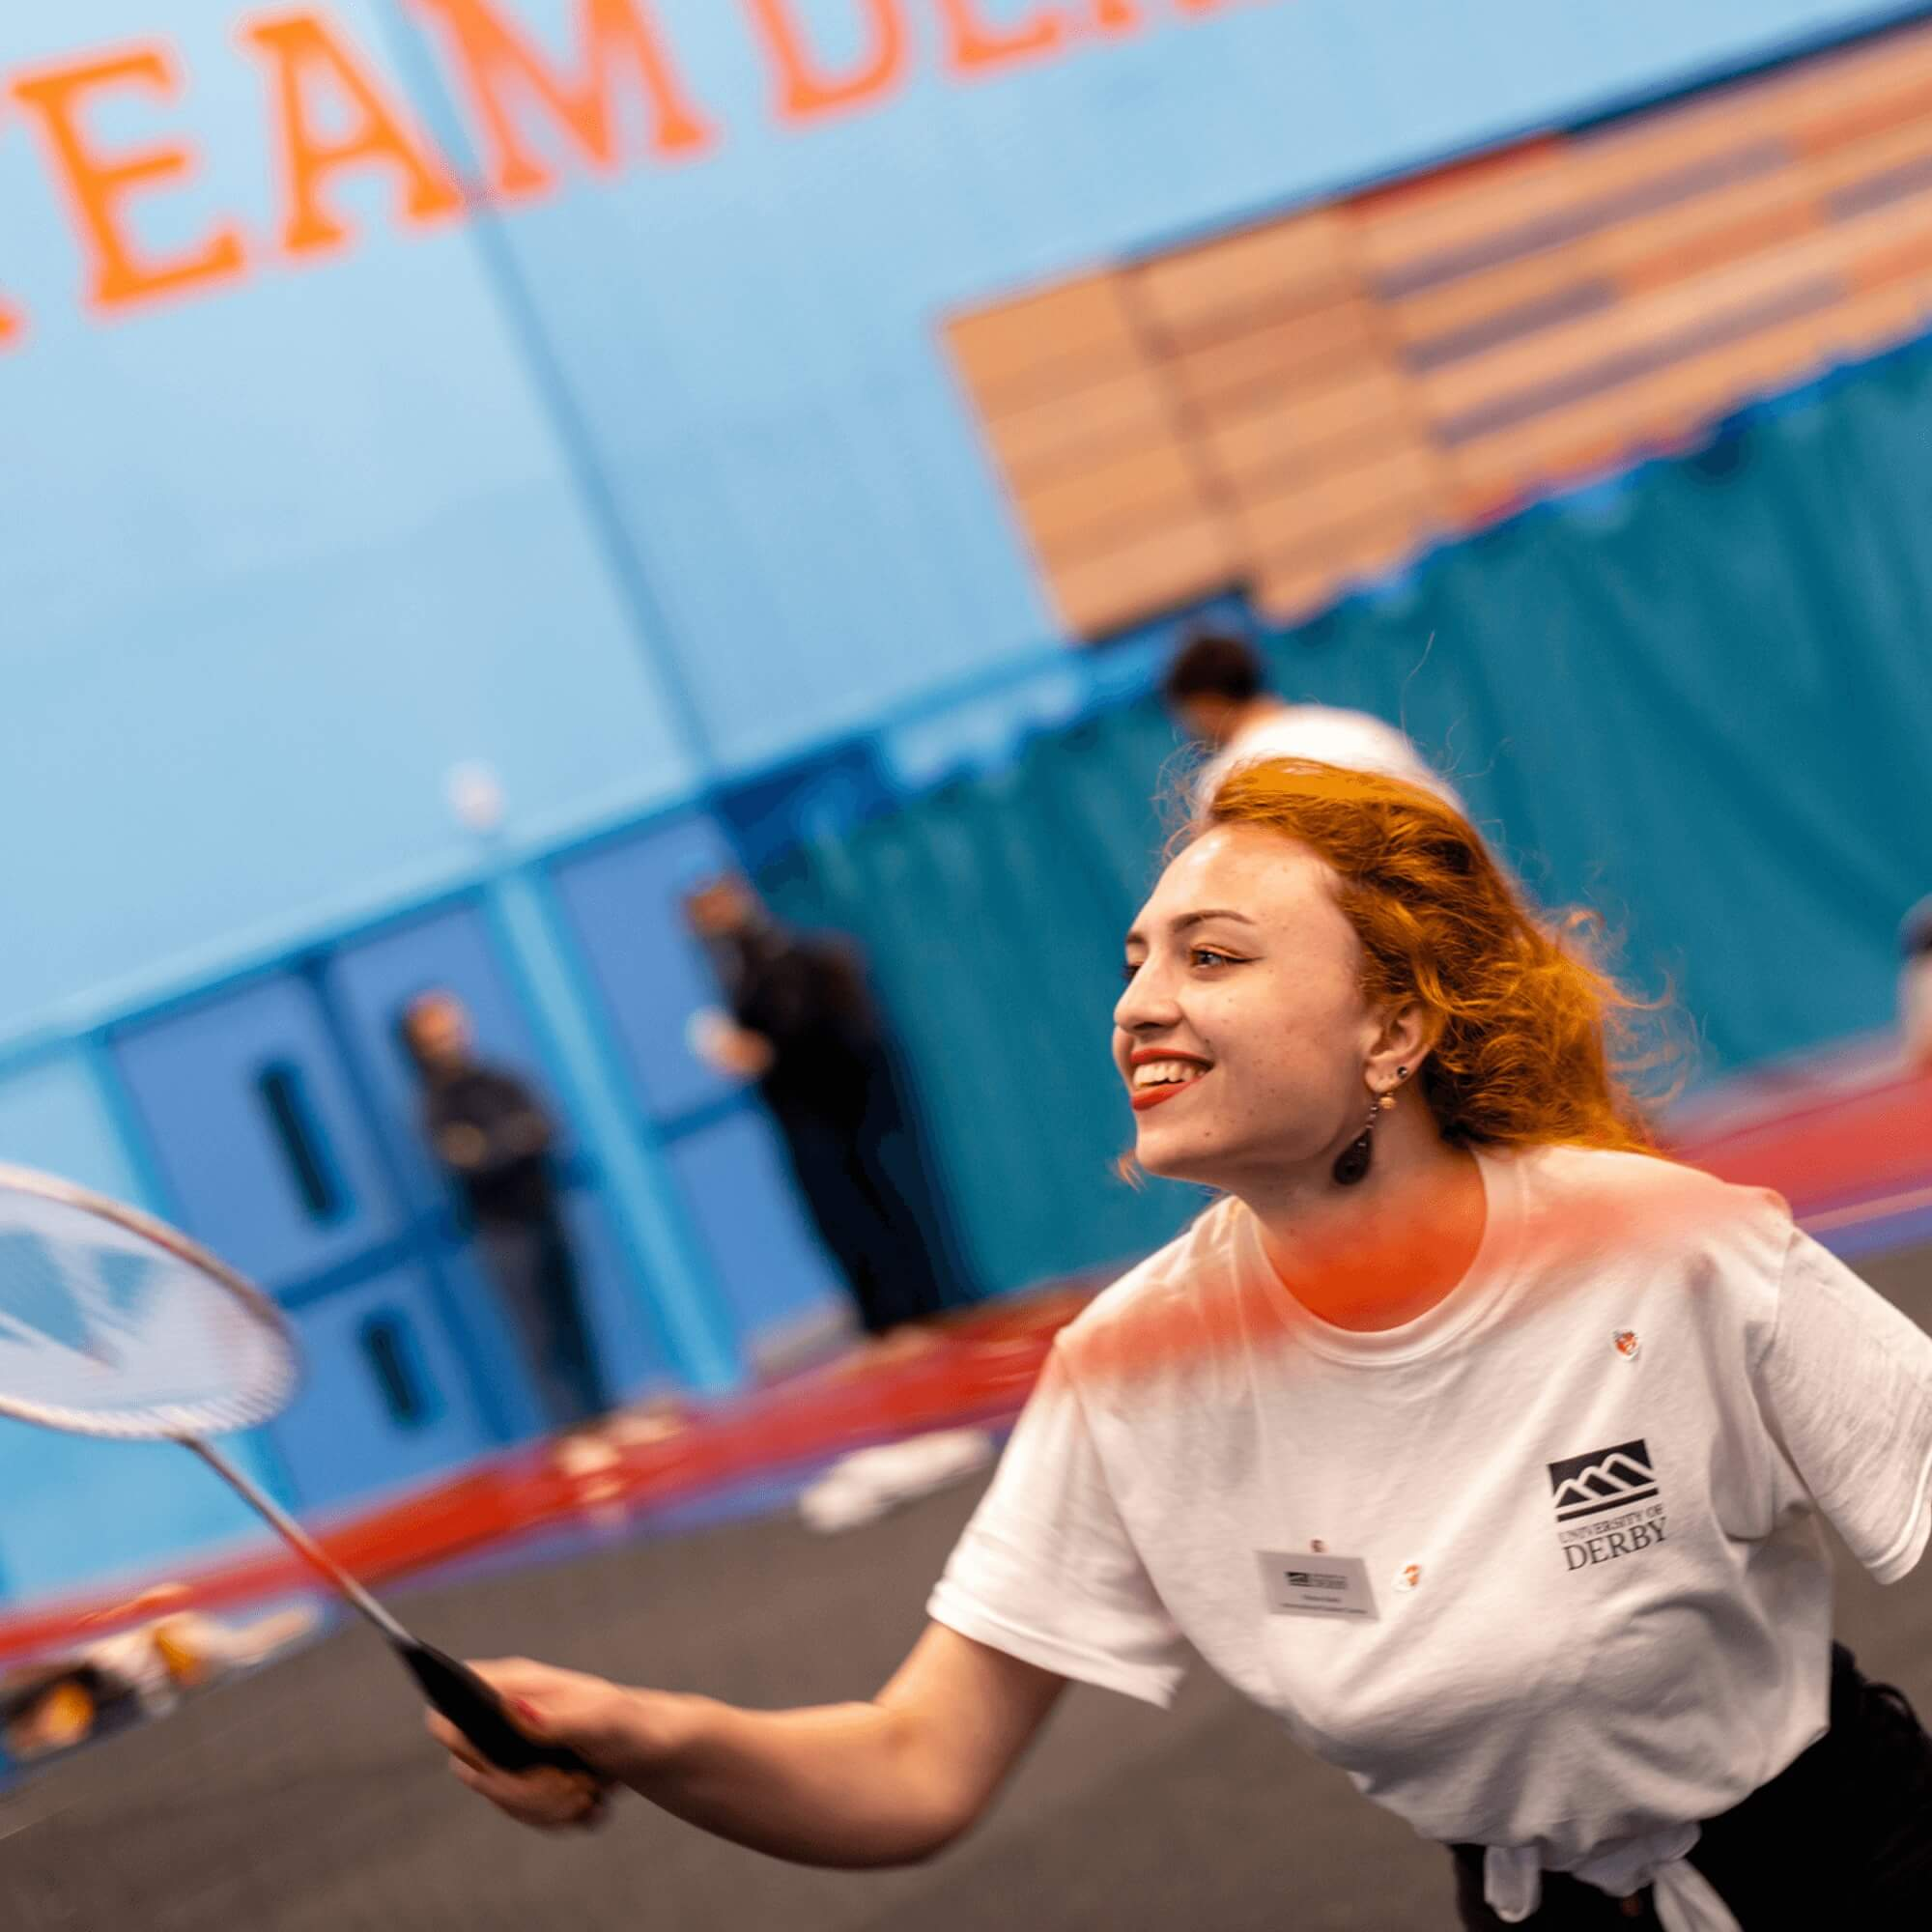 An international student playing badminton